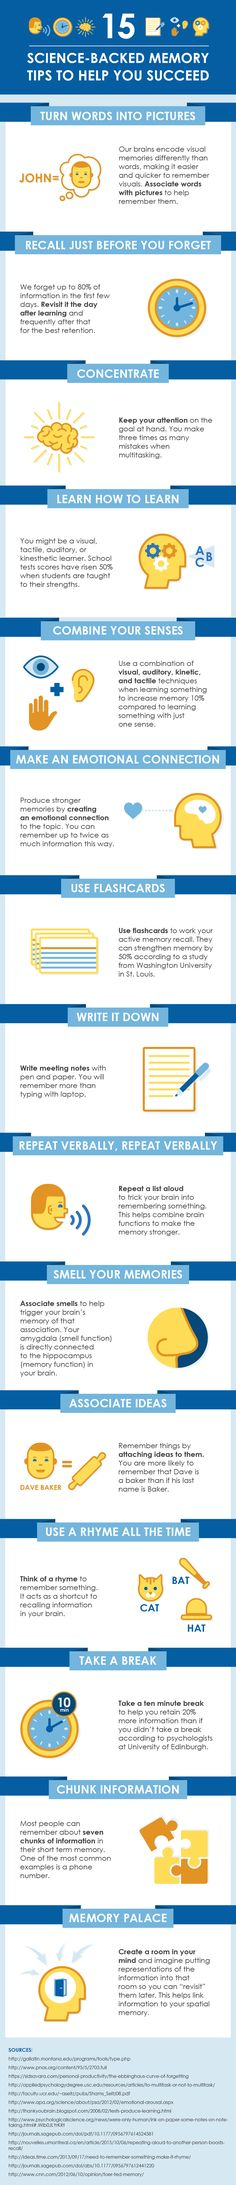 15 Science-Backed Memory Tips to Help You Succeed (Infographic)